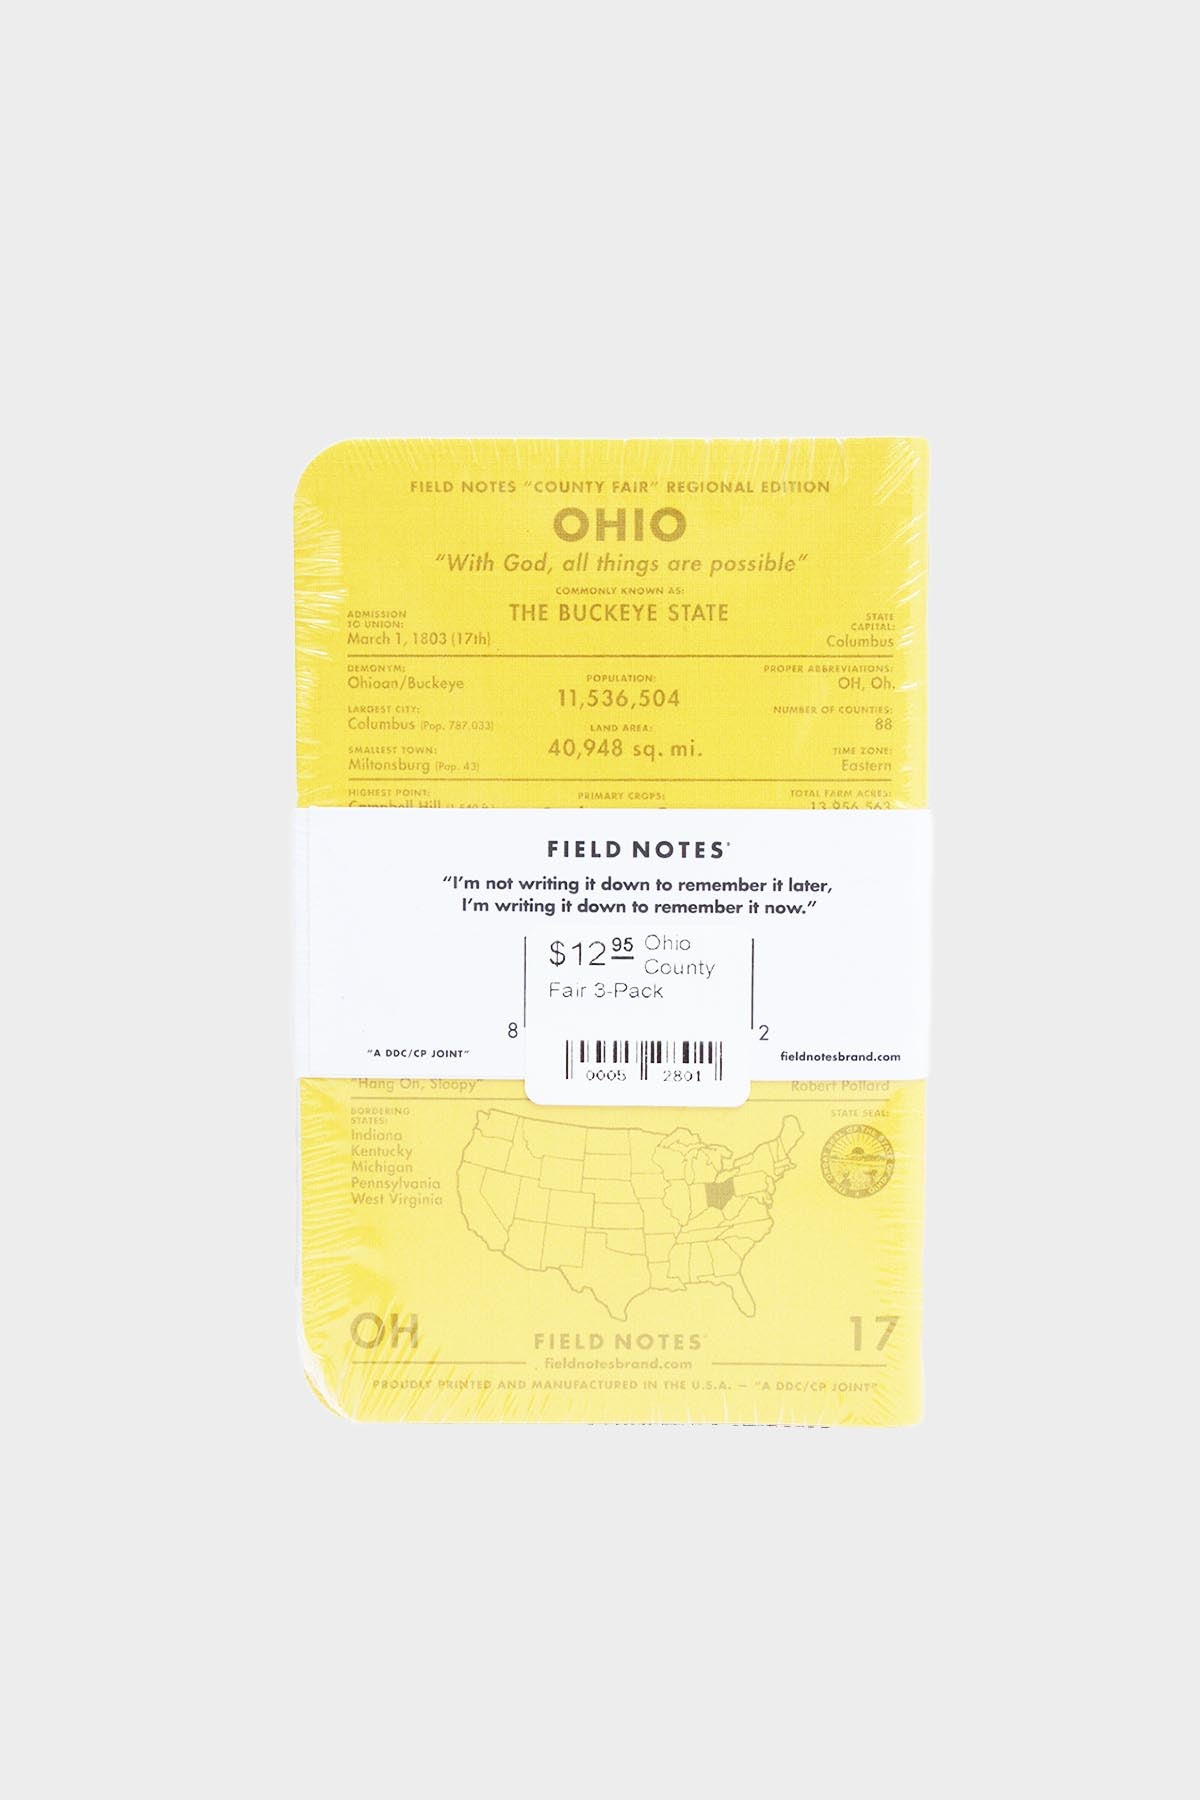 Ohio County Fair 3-Pack